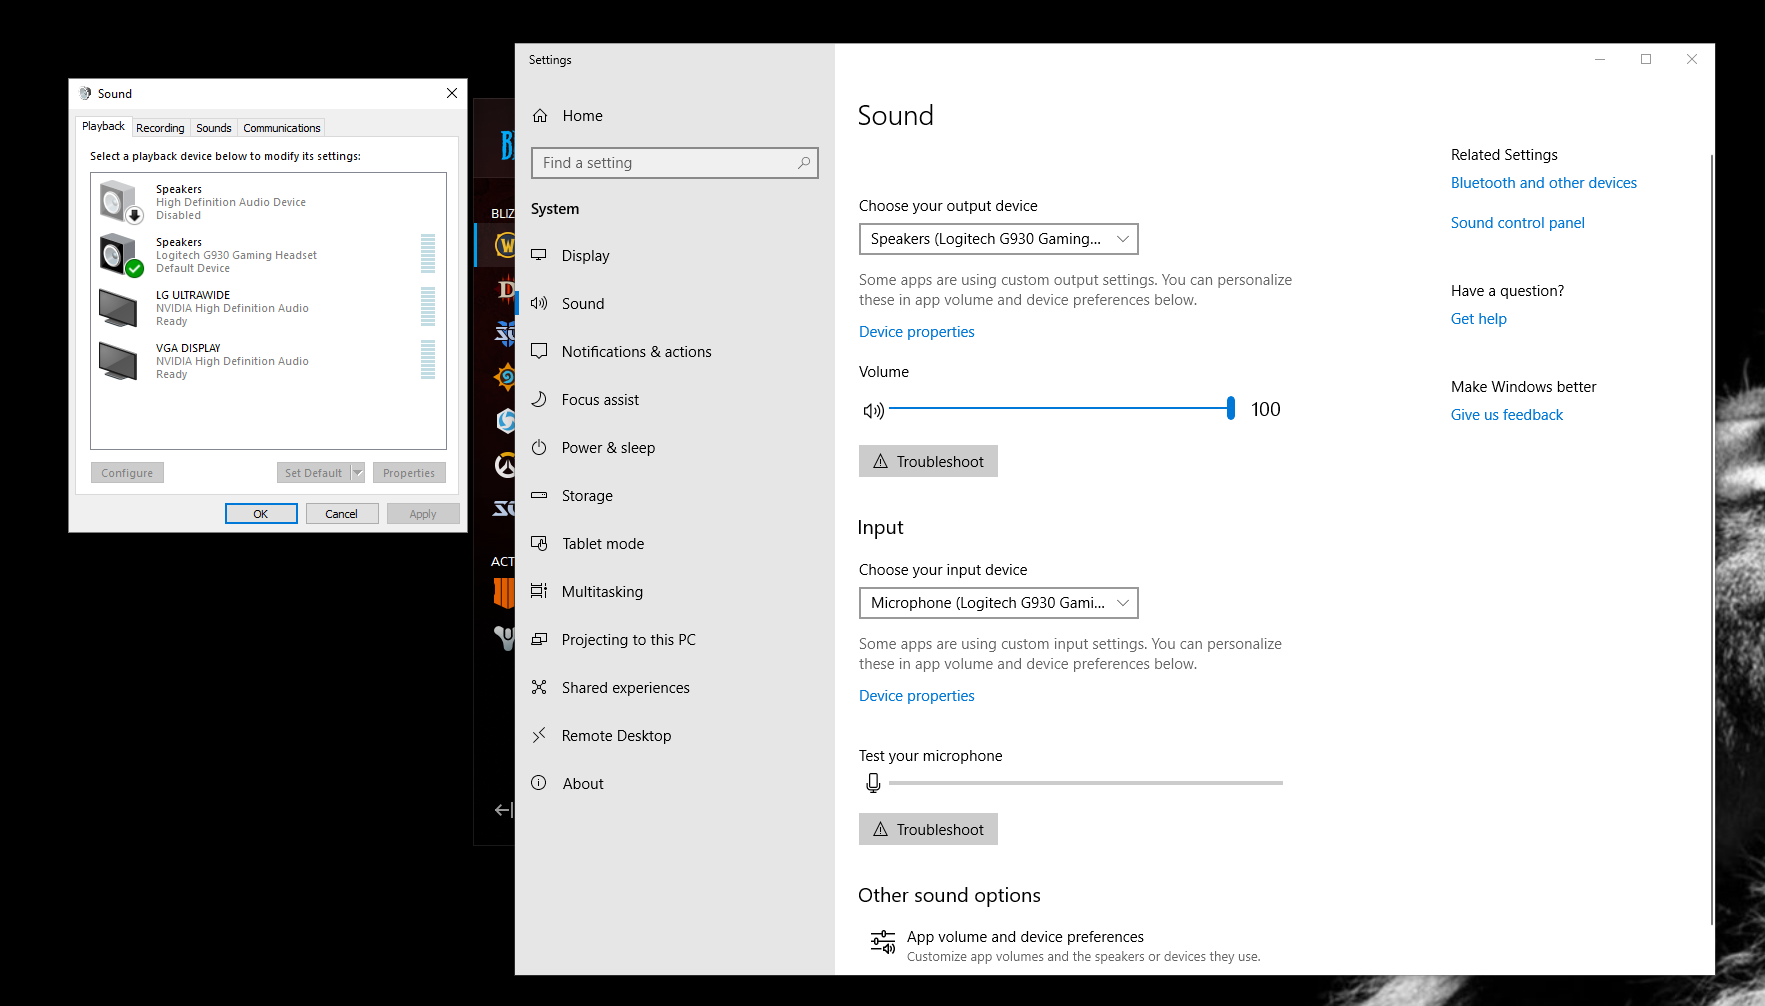 Not able to open sound settings in control panel d961e797-0f53-4eaf-834f-6ed62138c42f?upload=true.png